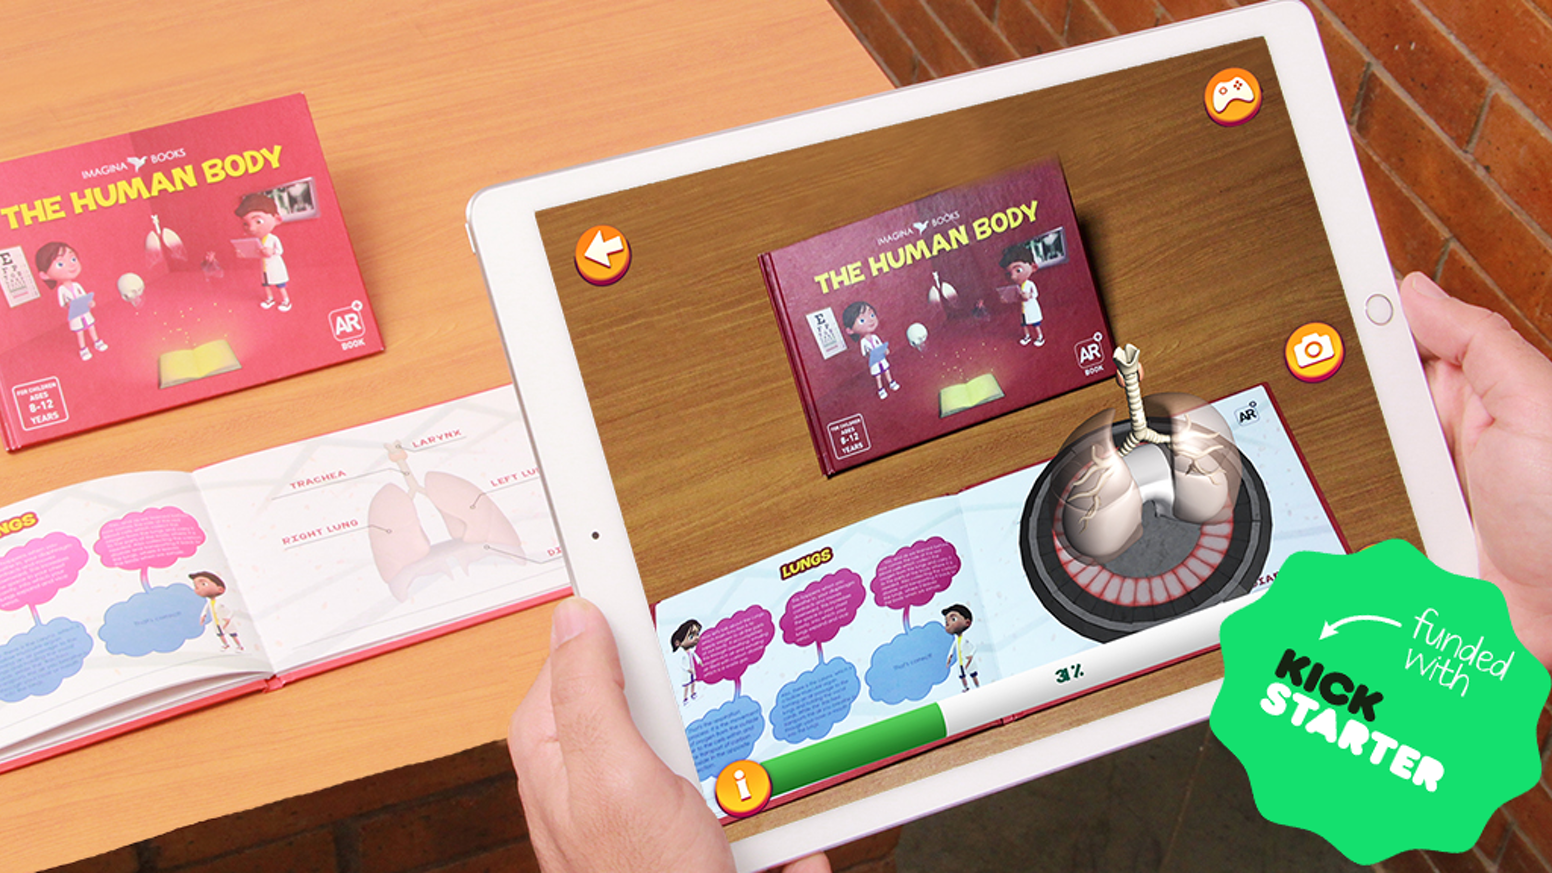 Unleash your kid's inner scientist with this augmented reality book and application of the human anatomy and bodily functions.